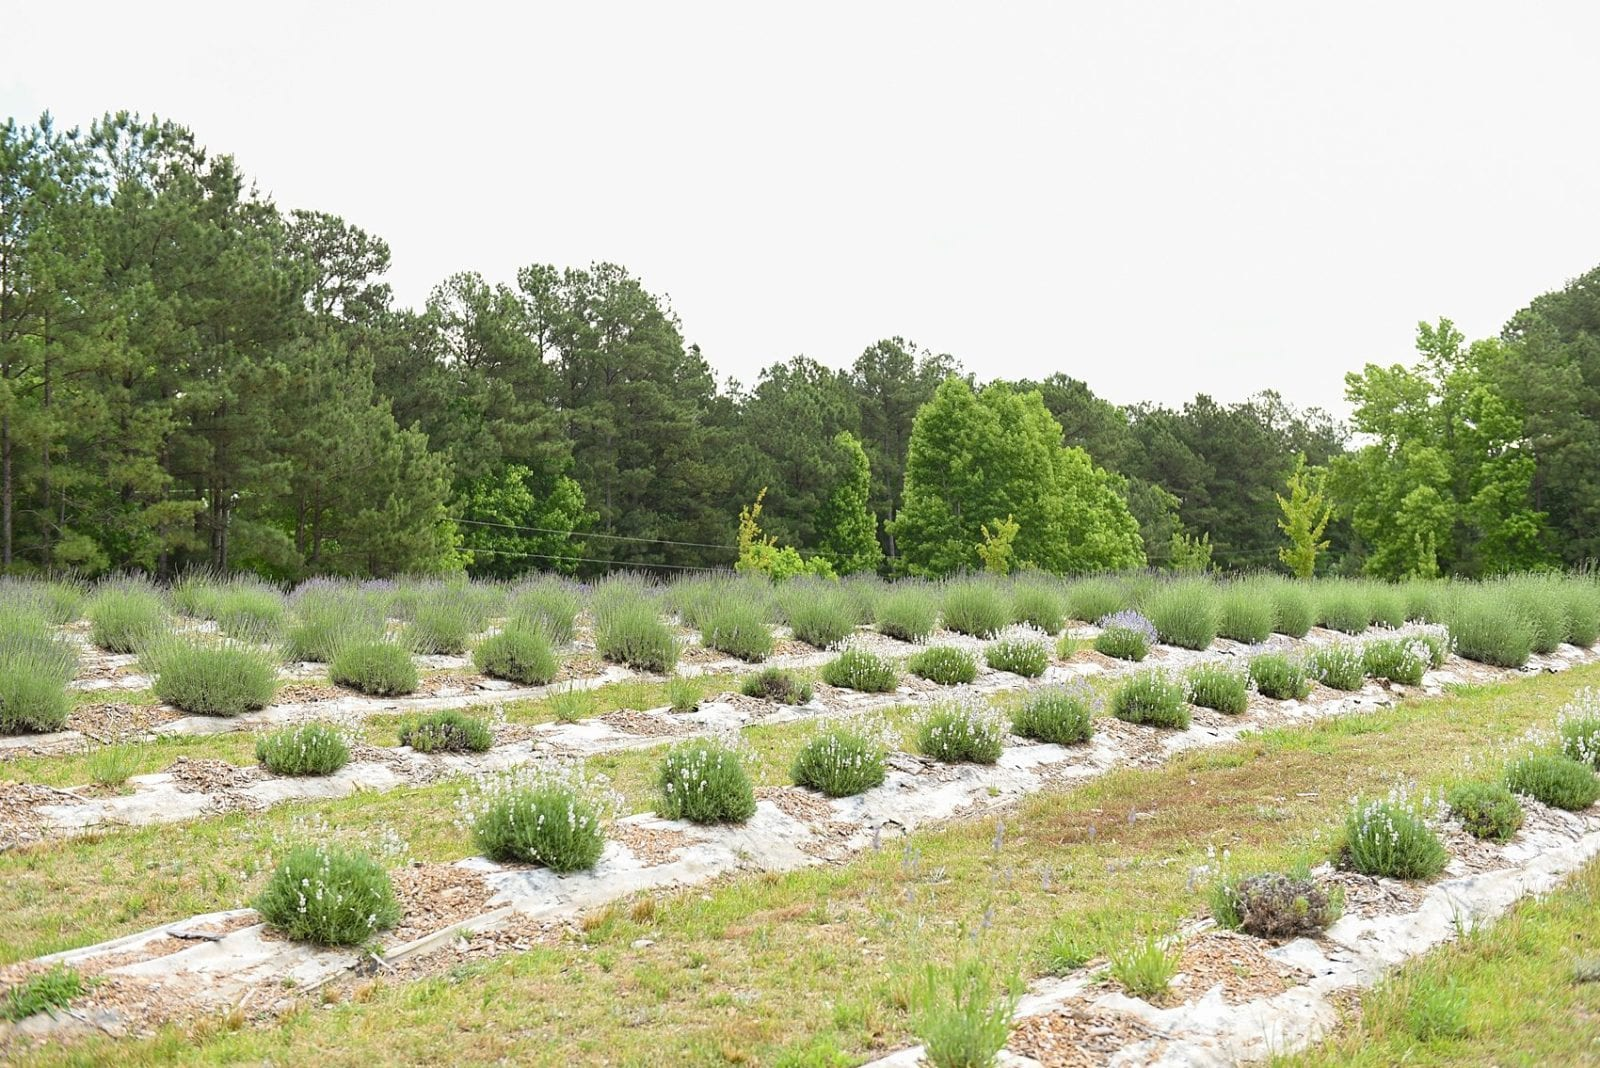 Lavender farm in Raleigh, North Carolina. Photos by Mikkel Paige Photography for Sometimes Home 30-something travel blog.